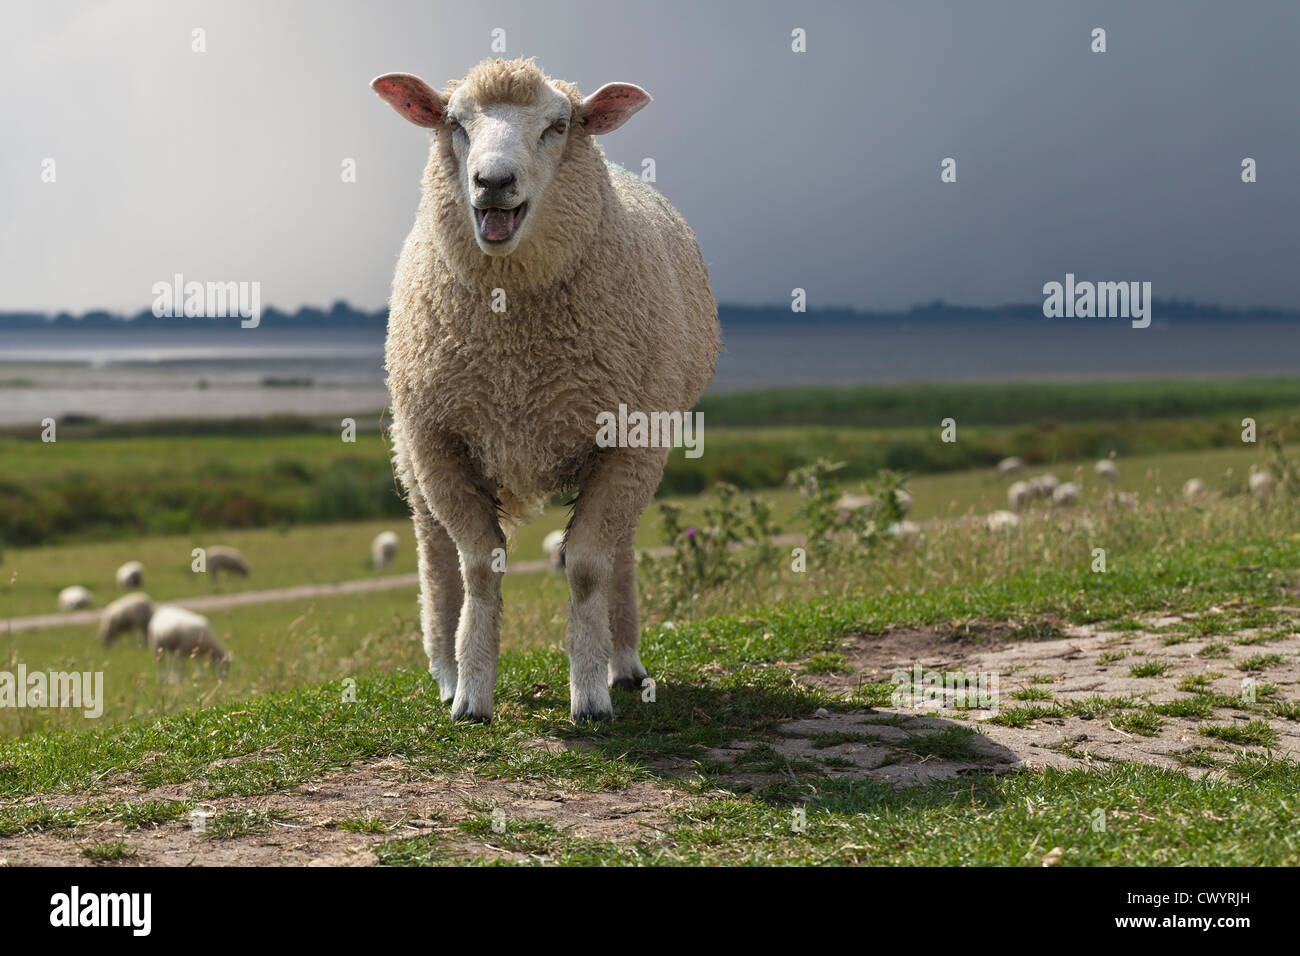 Bleating sheep on dyke - Stock Image